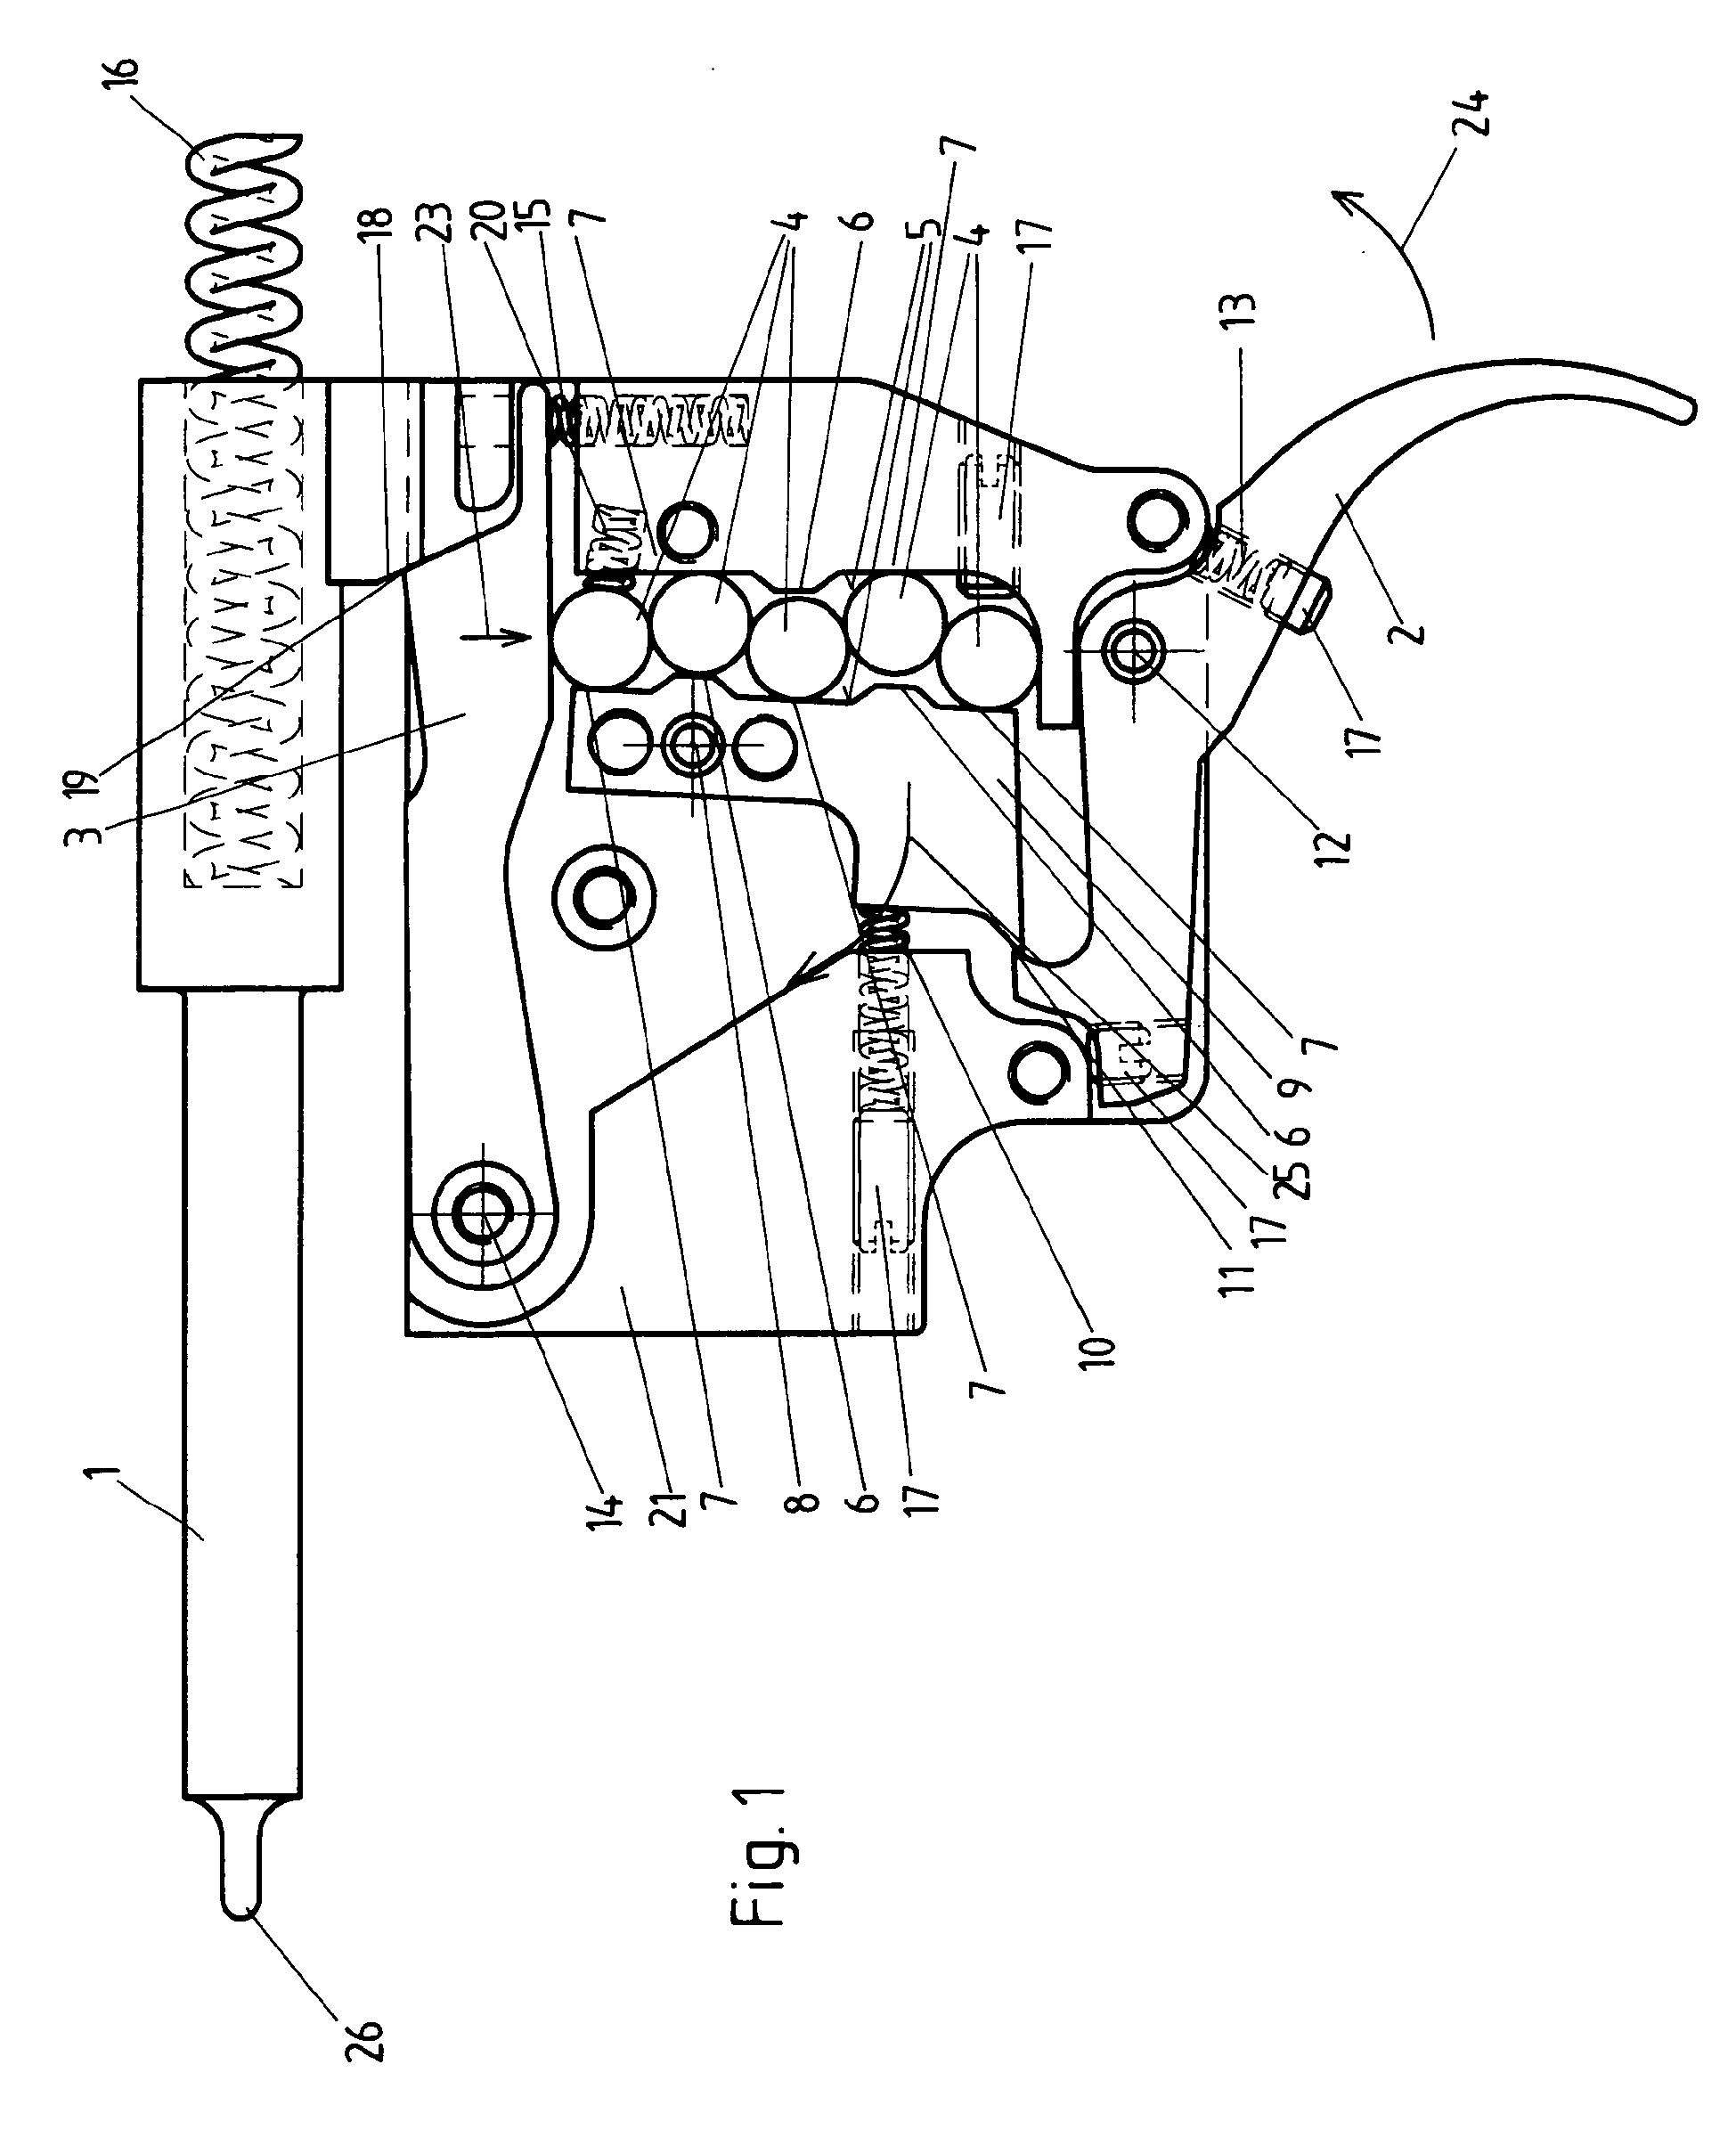 Pignose Strat Wiring Diagram Diagrams Fender Amplifier Pioneer Deh P2500 Schematics 1900mp Set Guitar Squier